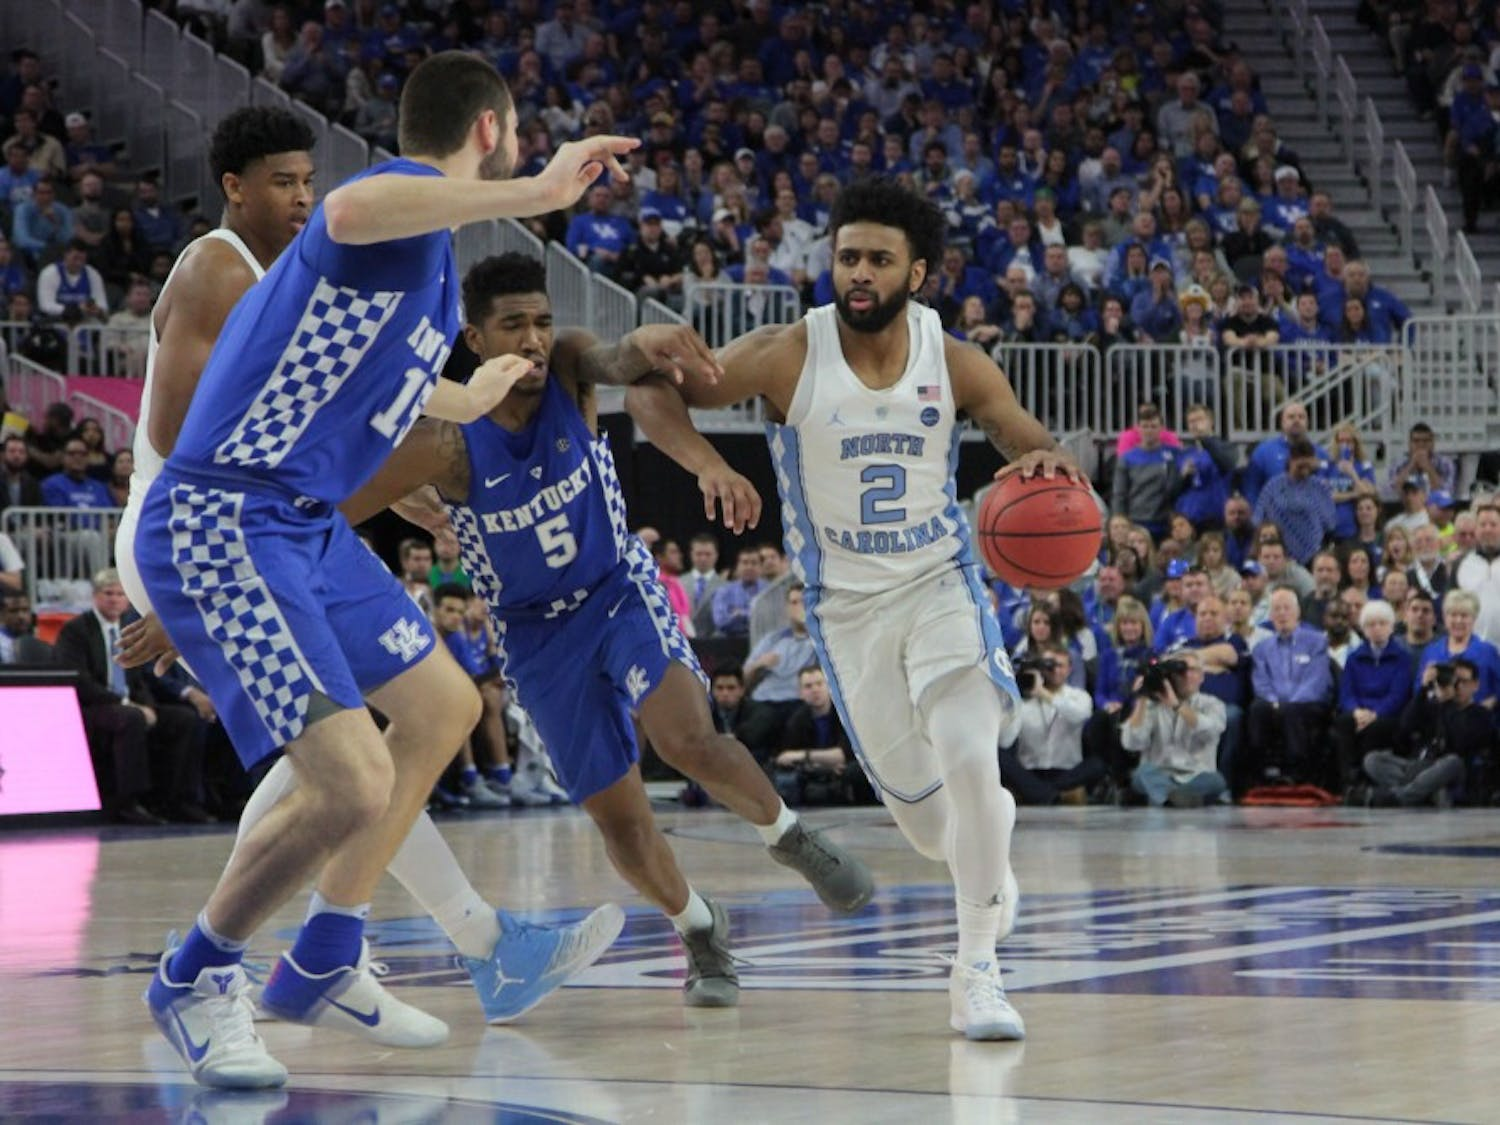 UNC guard Joel Berry (2) drives toward the basket against Kentucky at the CBS Sports Classic on Saturday.